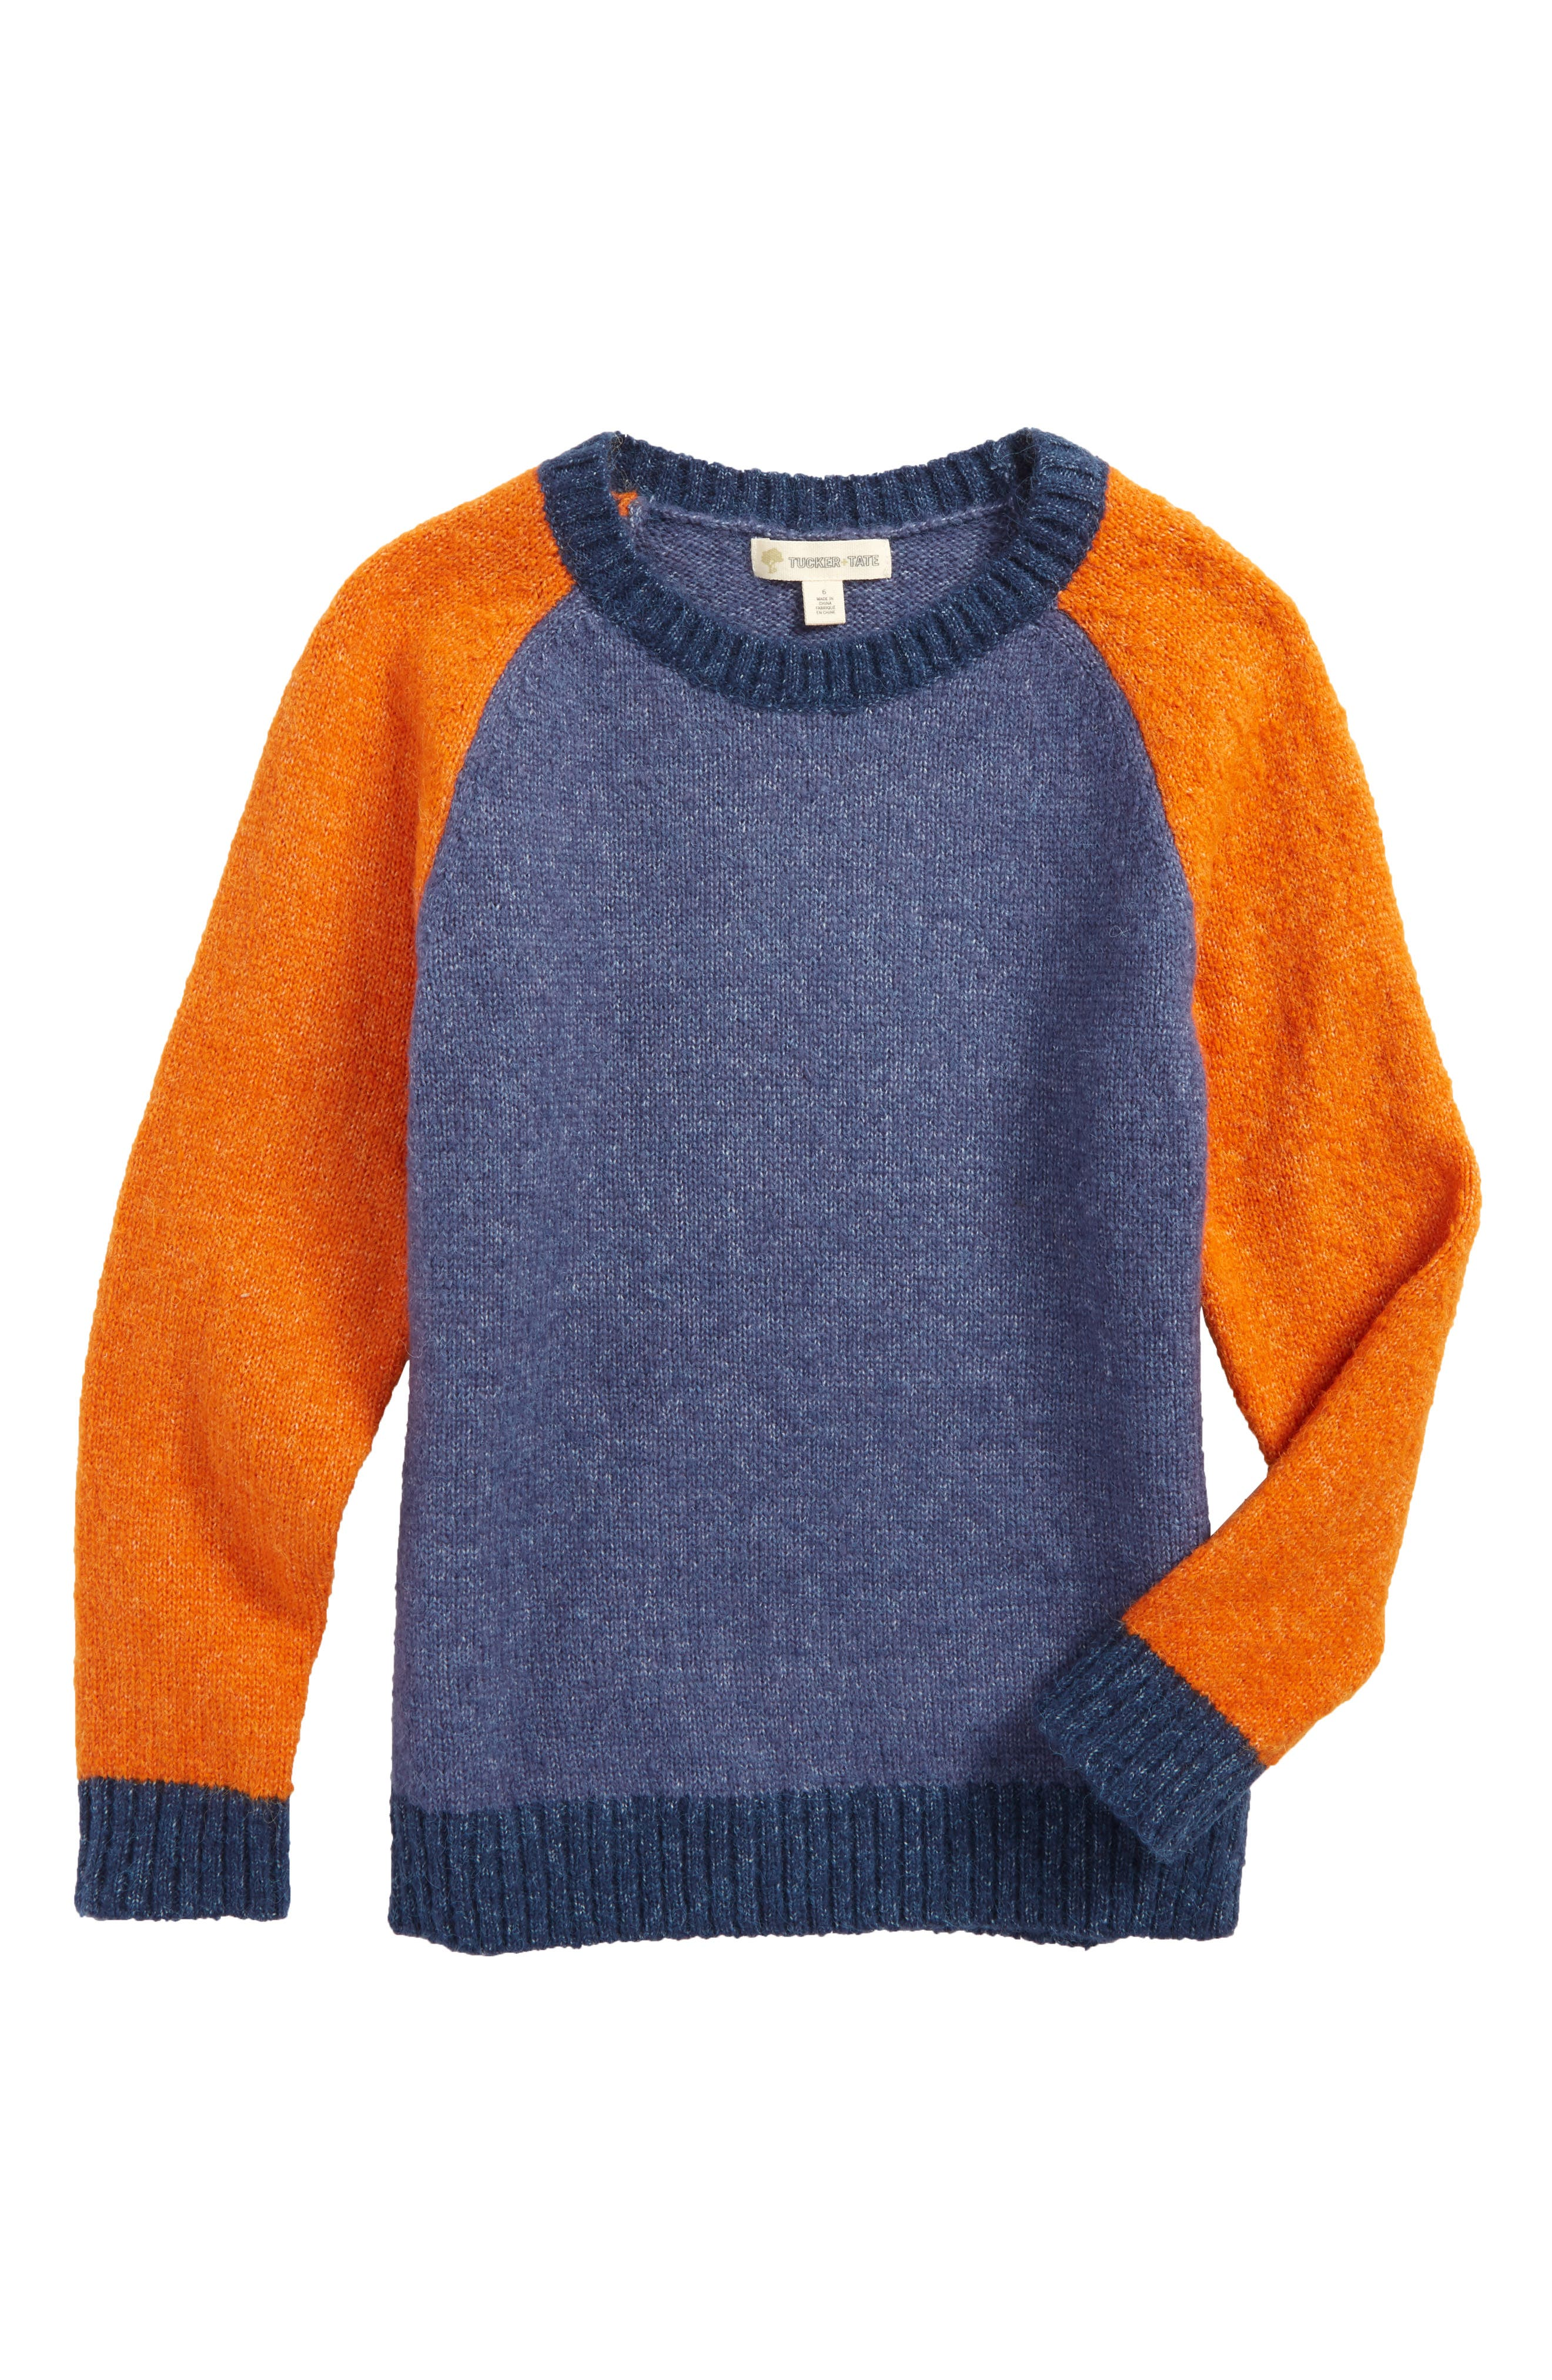 Main Image - Tucker + Tate Colorblock Sweater (Toddler Boys & Little Boys)